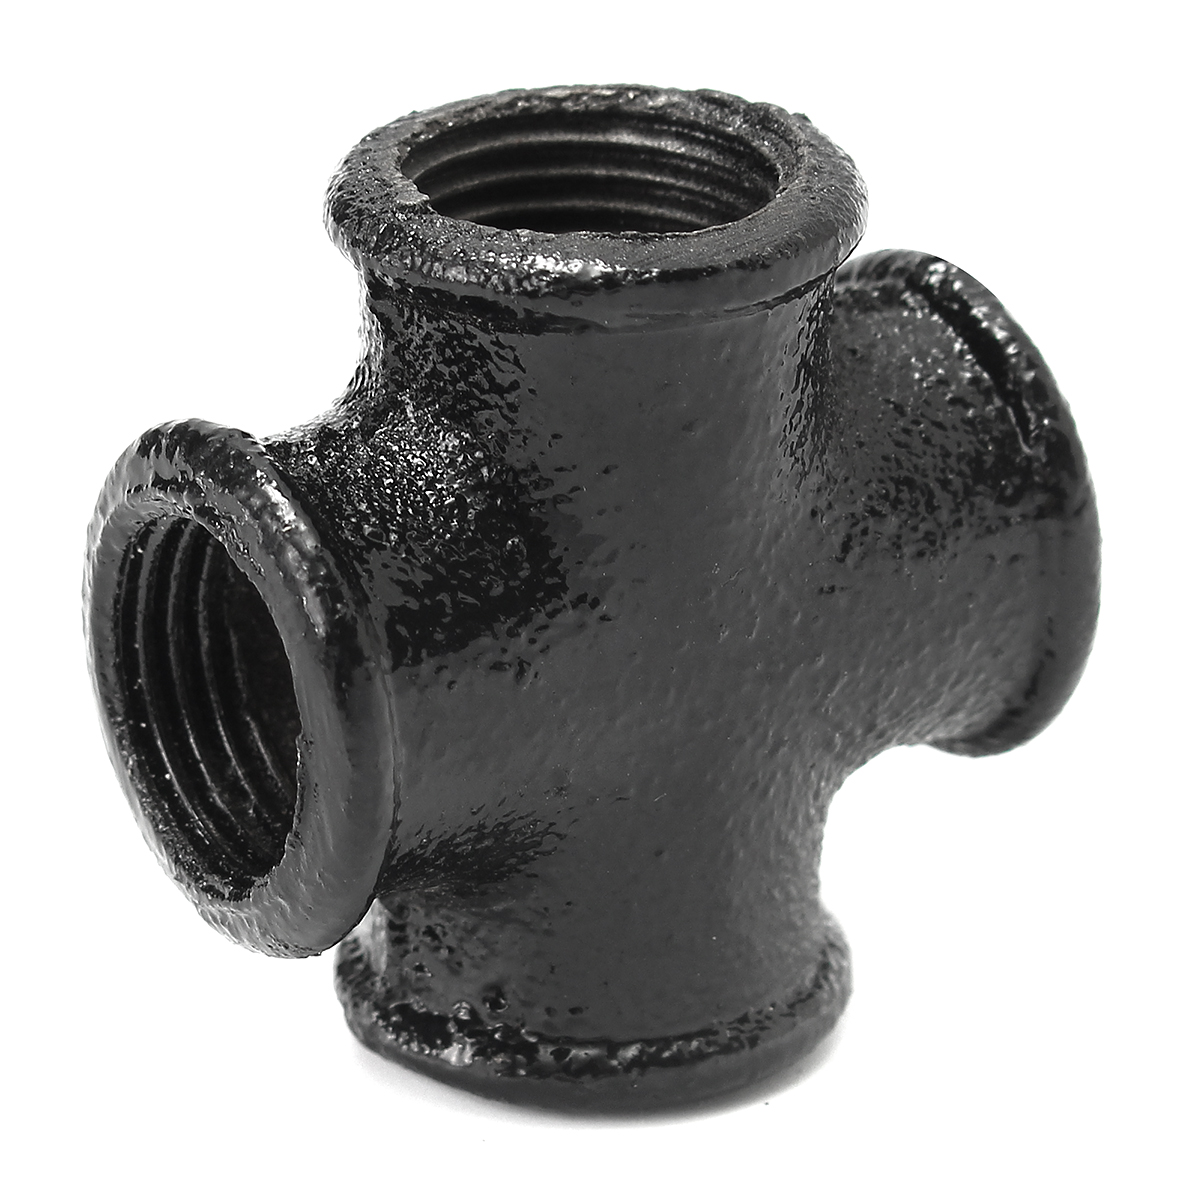 1/2 Inch Iron Threaded Cross Pipe Plumbing Fitting 4-Wa